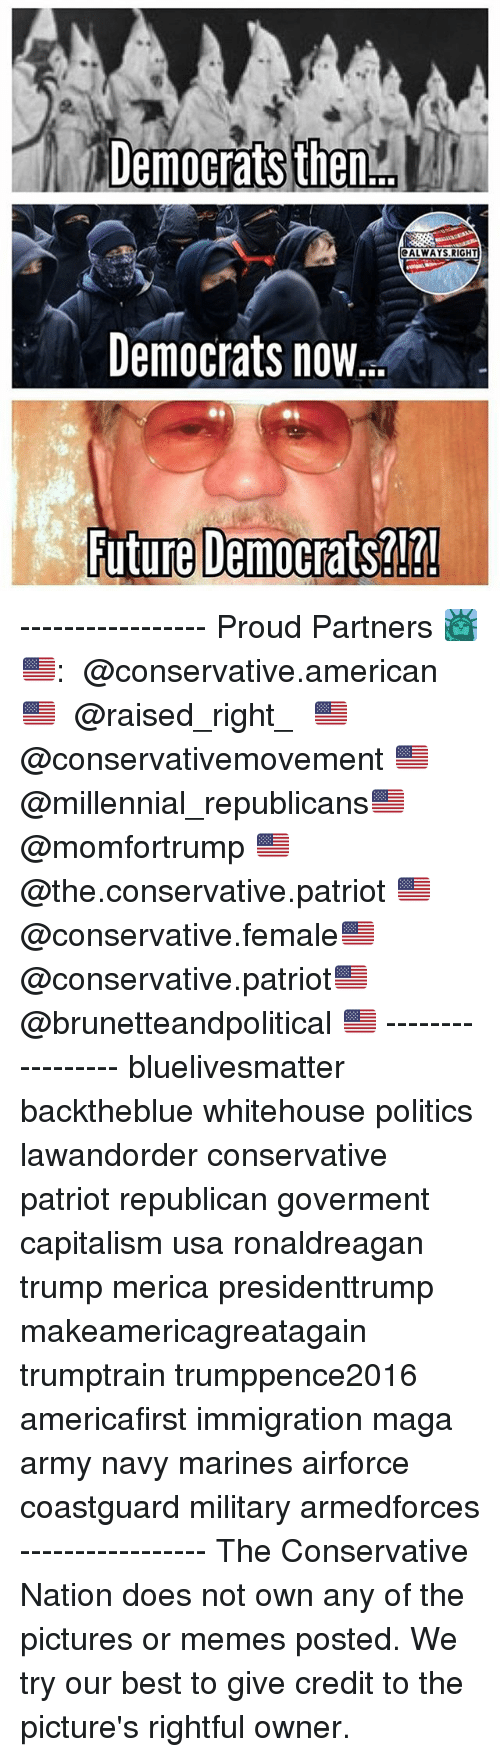 Future, Memes, and Politics: Democrats then  ALWAYS RIGHT  Democrats now  Future Democrats?!?! ----------------- Proud Partners 🗽🇺🇸: ★ @conservative.american 🇺🇸 ★ @raised_right_ 🇺🇸 ★ @conservativemovement 🇺🇸 ★ @millennial_republicans🇺🇸 ★ @momfortrump 🇺🇸 ★ @the.conservative.patriot 🇺🇸 ★ @conservative.female🇺🇸 ★ @conservative.patriot🇺🇸 ★ @brunetteandpolitical 🇺🇸 ----------------- bluelivesmatter backtheblue whitehouse politics lawandorder conservative patriot republican goverment capitalism usa ronaldreagan trump merica presidenttrump makeamericagreatagain trumptrain trumppence2016 americafirst immigration maga army navy marines airforce coastguard military armedforces ----------------- The Conservative Nation does not own any of the pictures or memes posted. We try our best to give credit to the picture's rightful owner.